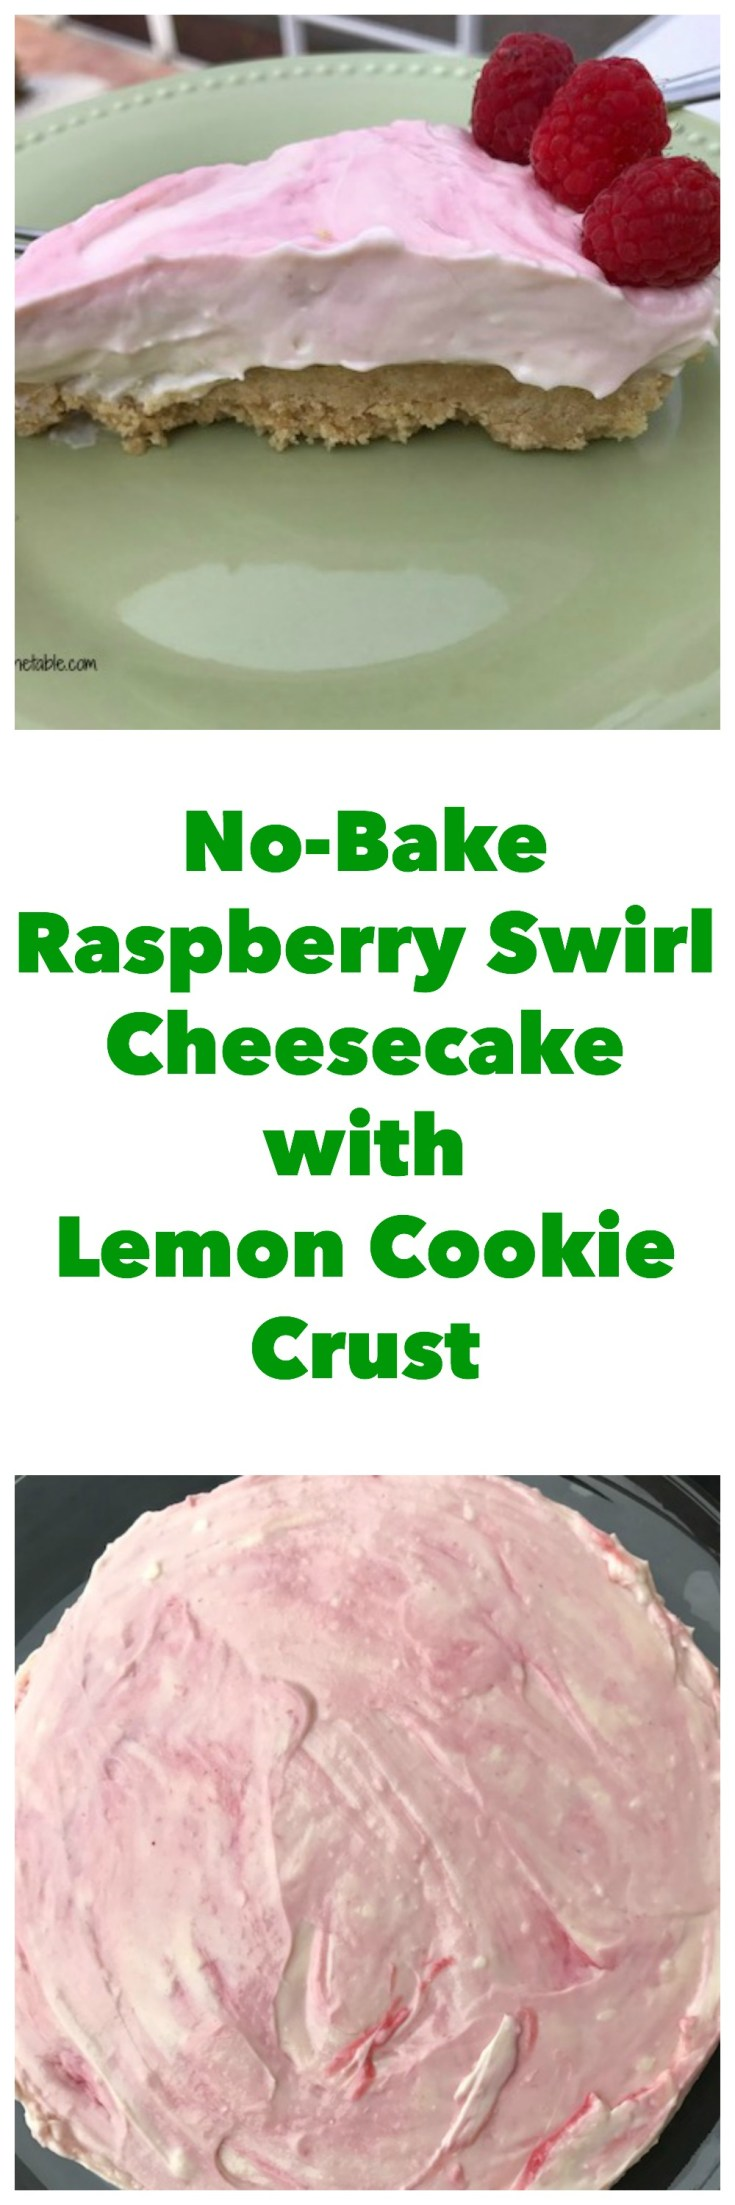 Enjoy lemony flavor paired with raspberry paired in this no-bake cheesecake made with products from Sprouts Farmer's Market